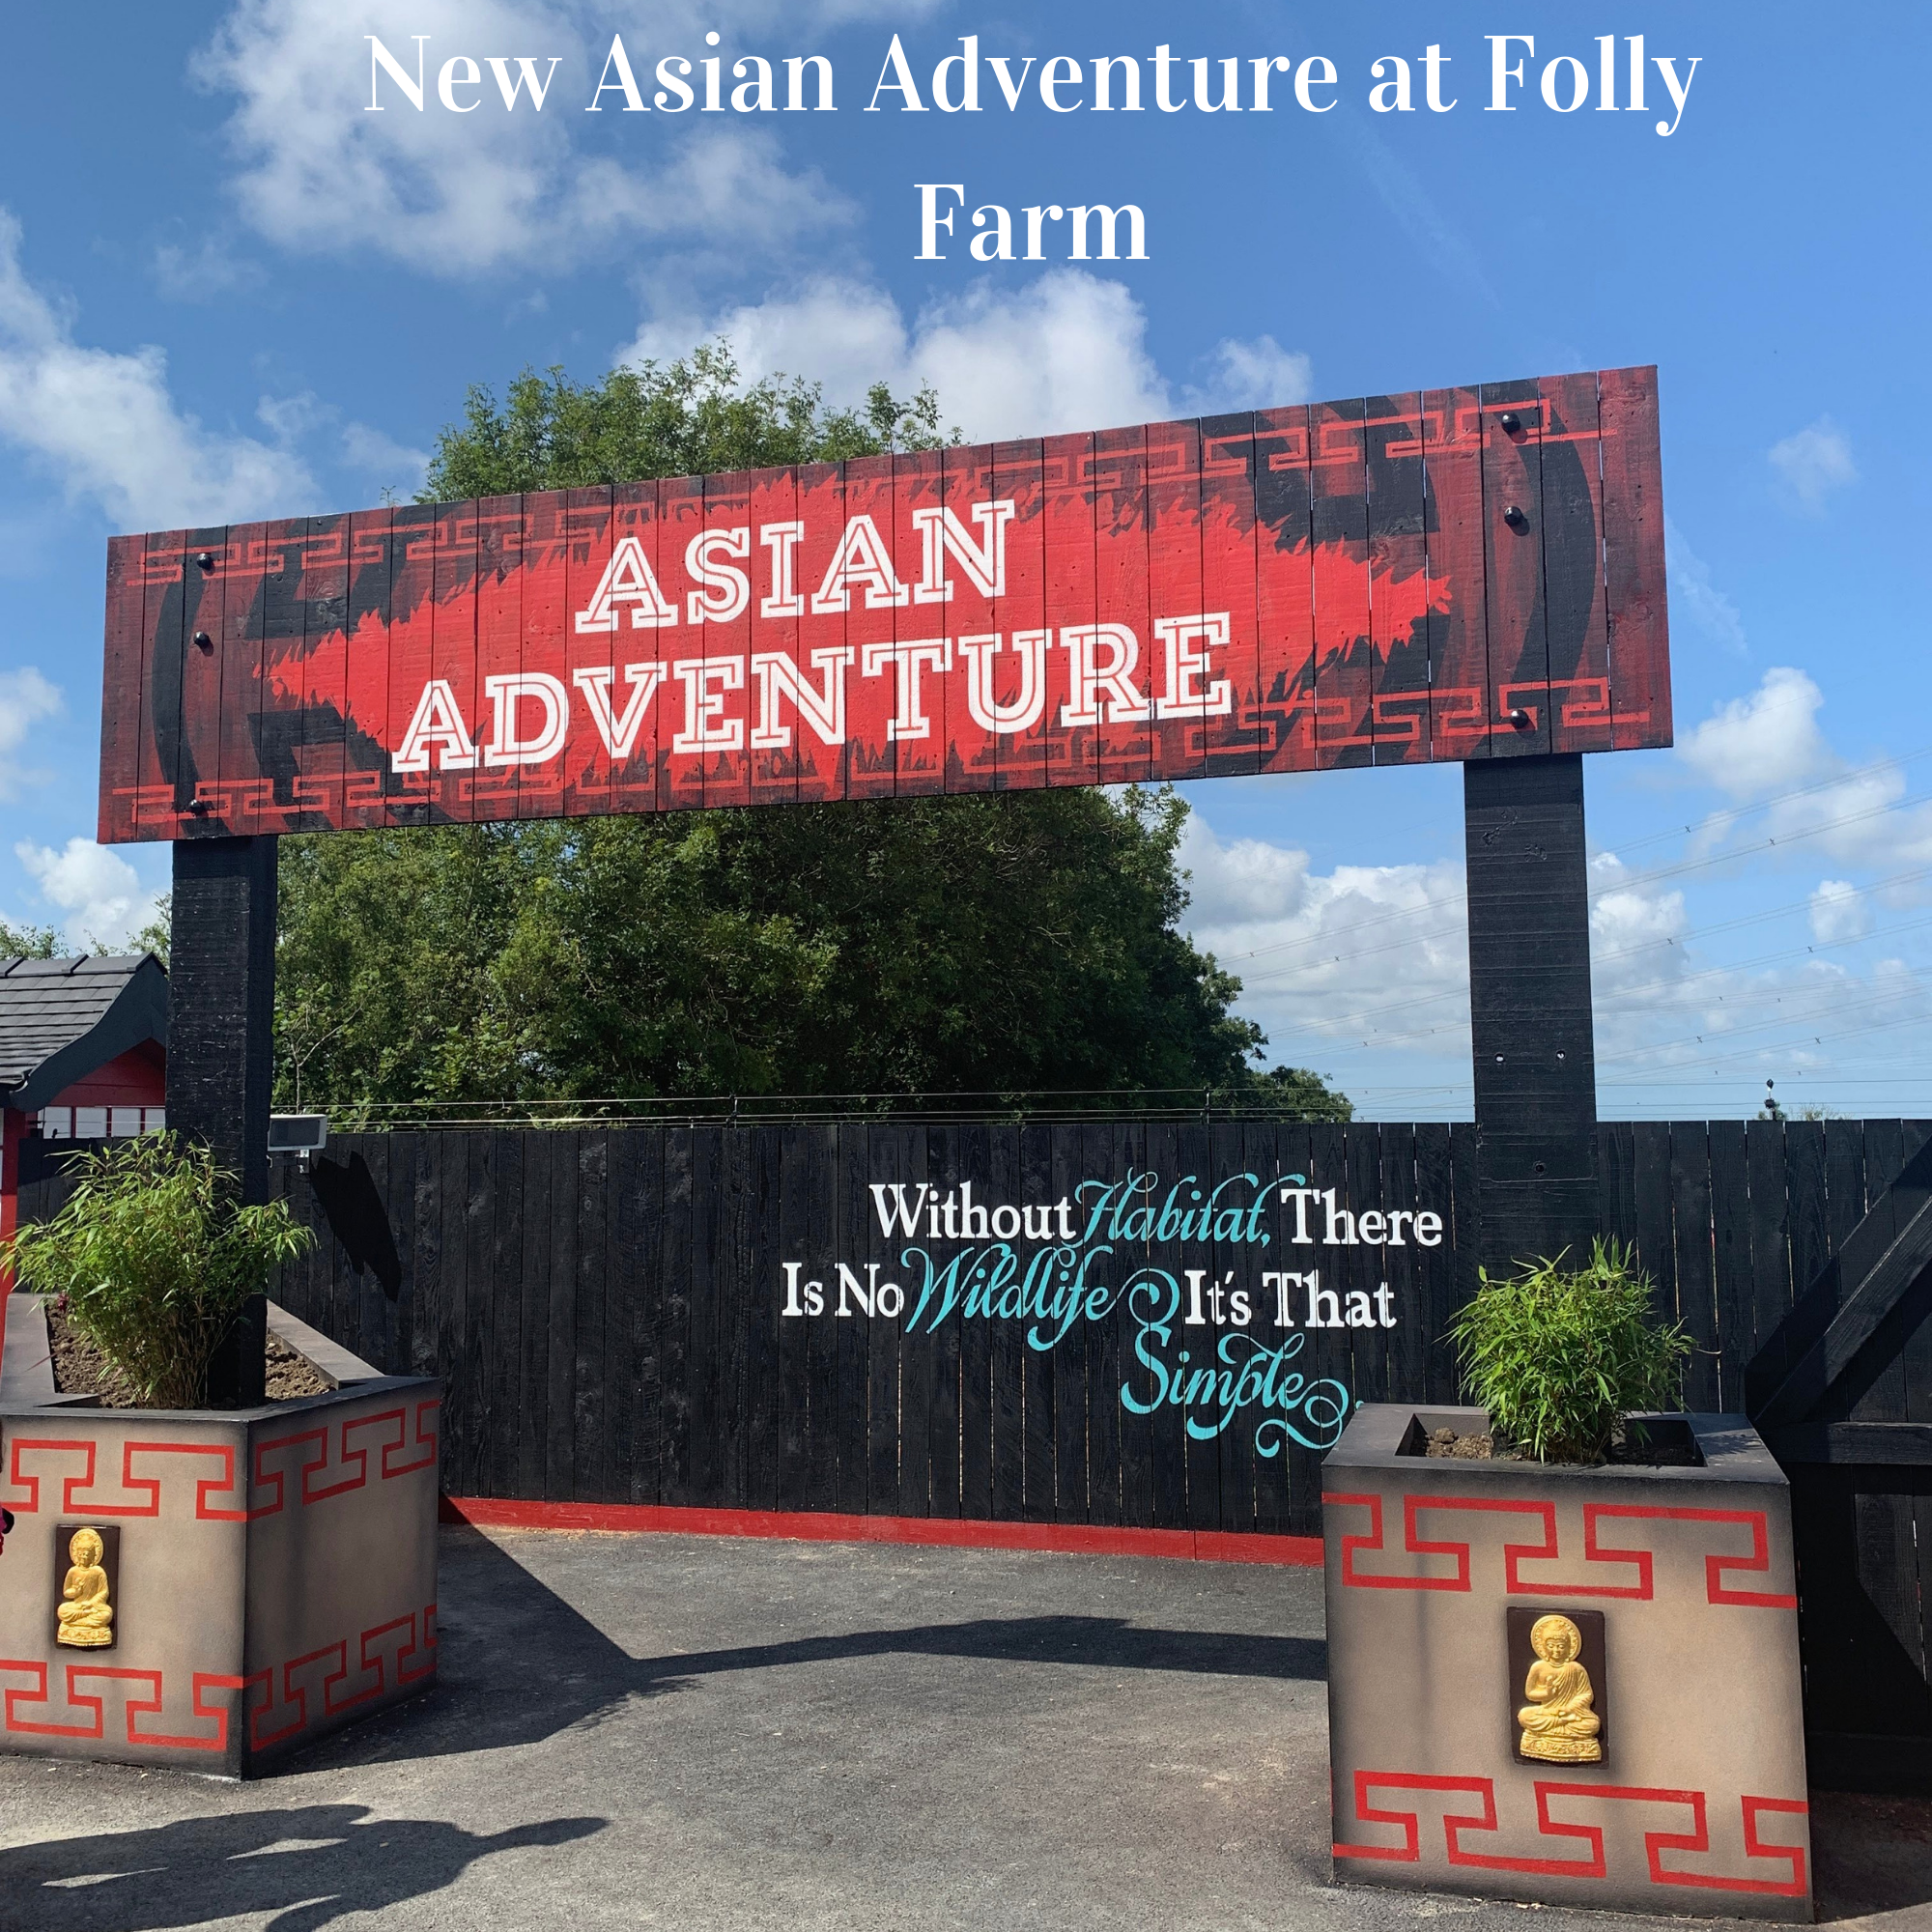 New Asian Adventure at Folly Farm